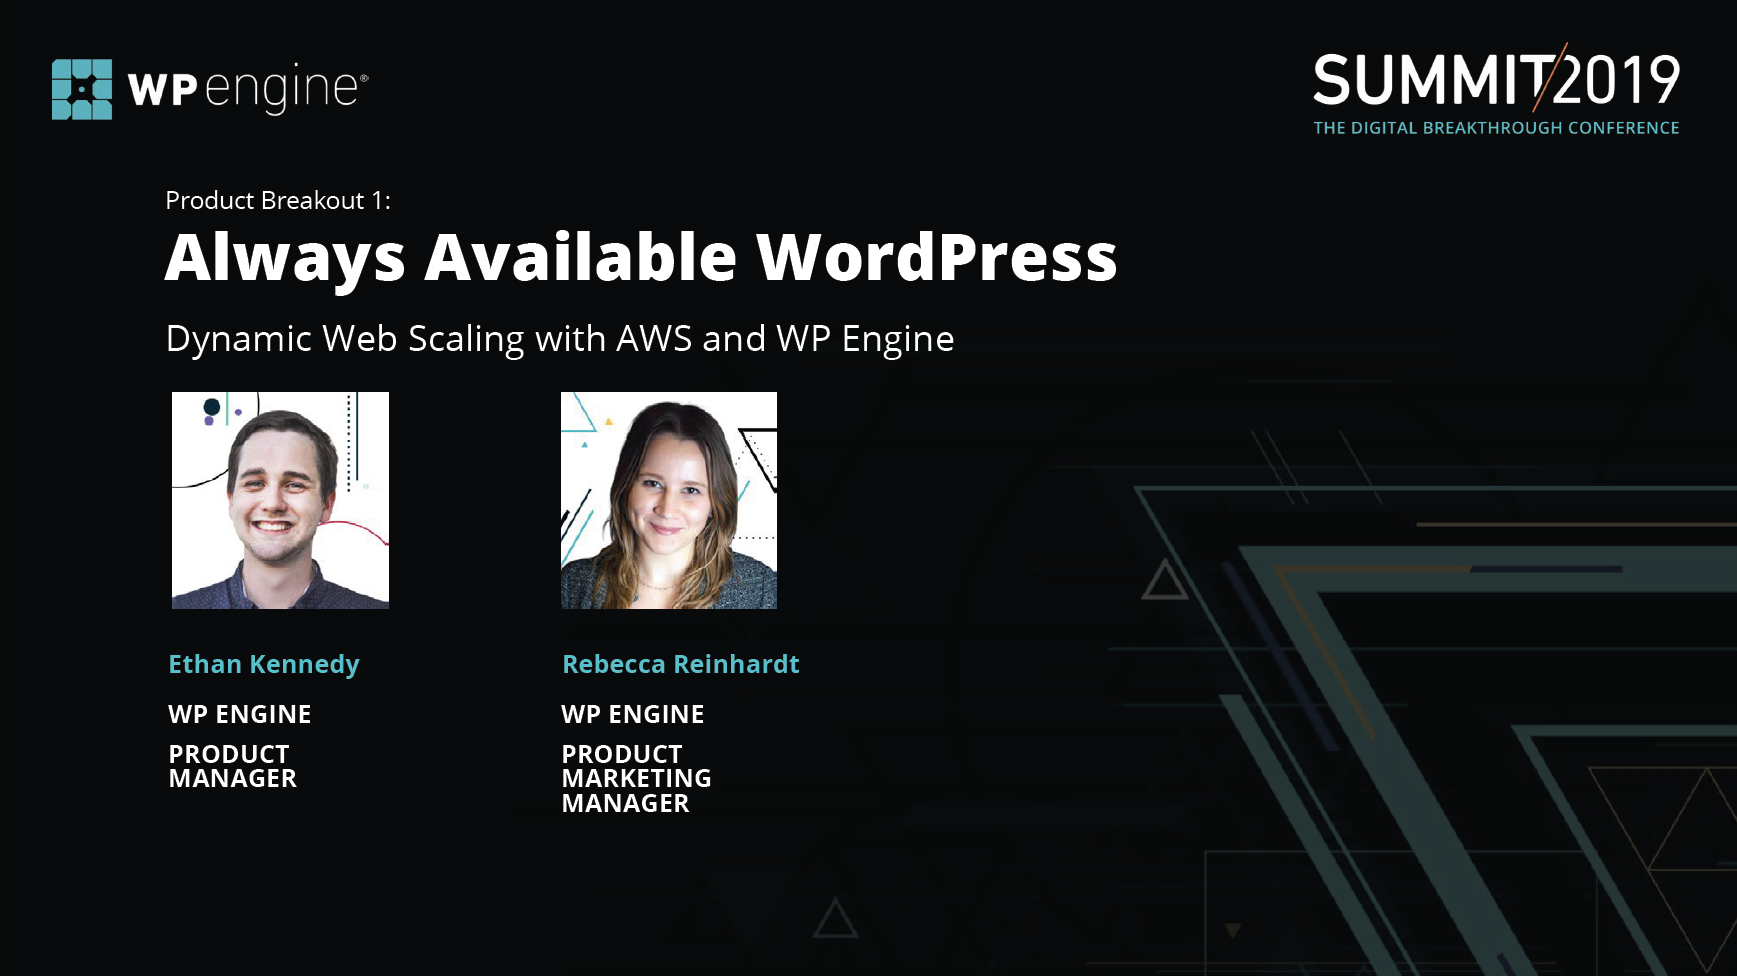 US Summit 2019 - WP Engine - Product Workshop 1- Always-Available WordPress - Dynamic Web Scaling